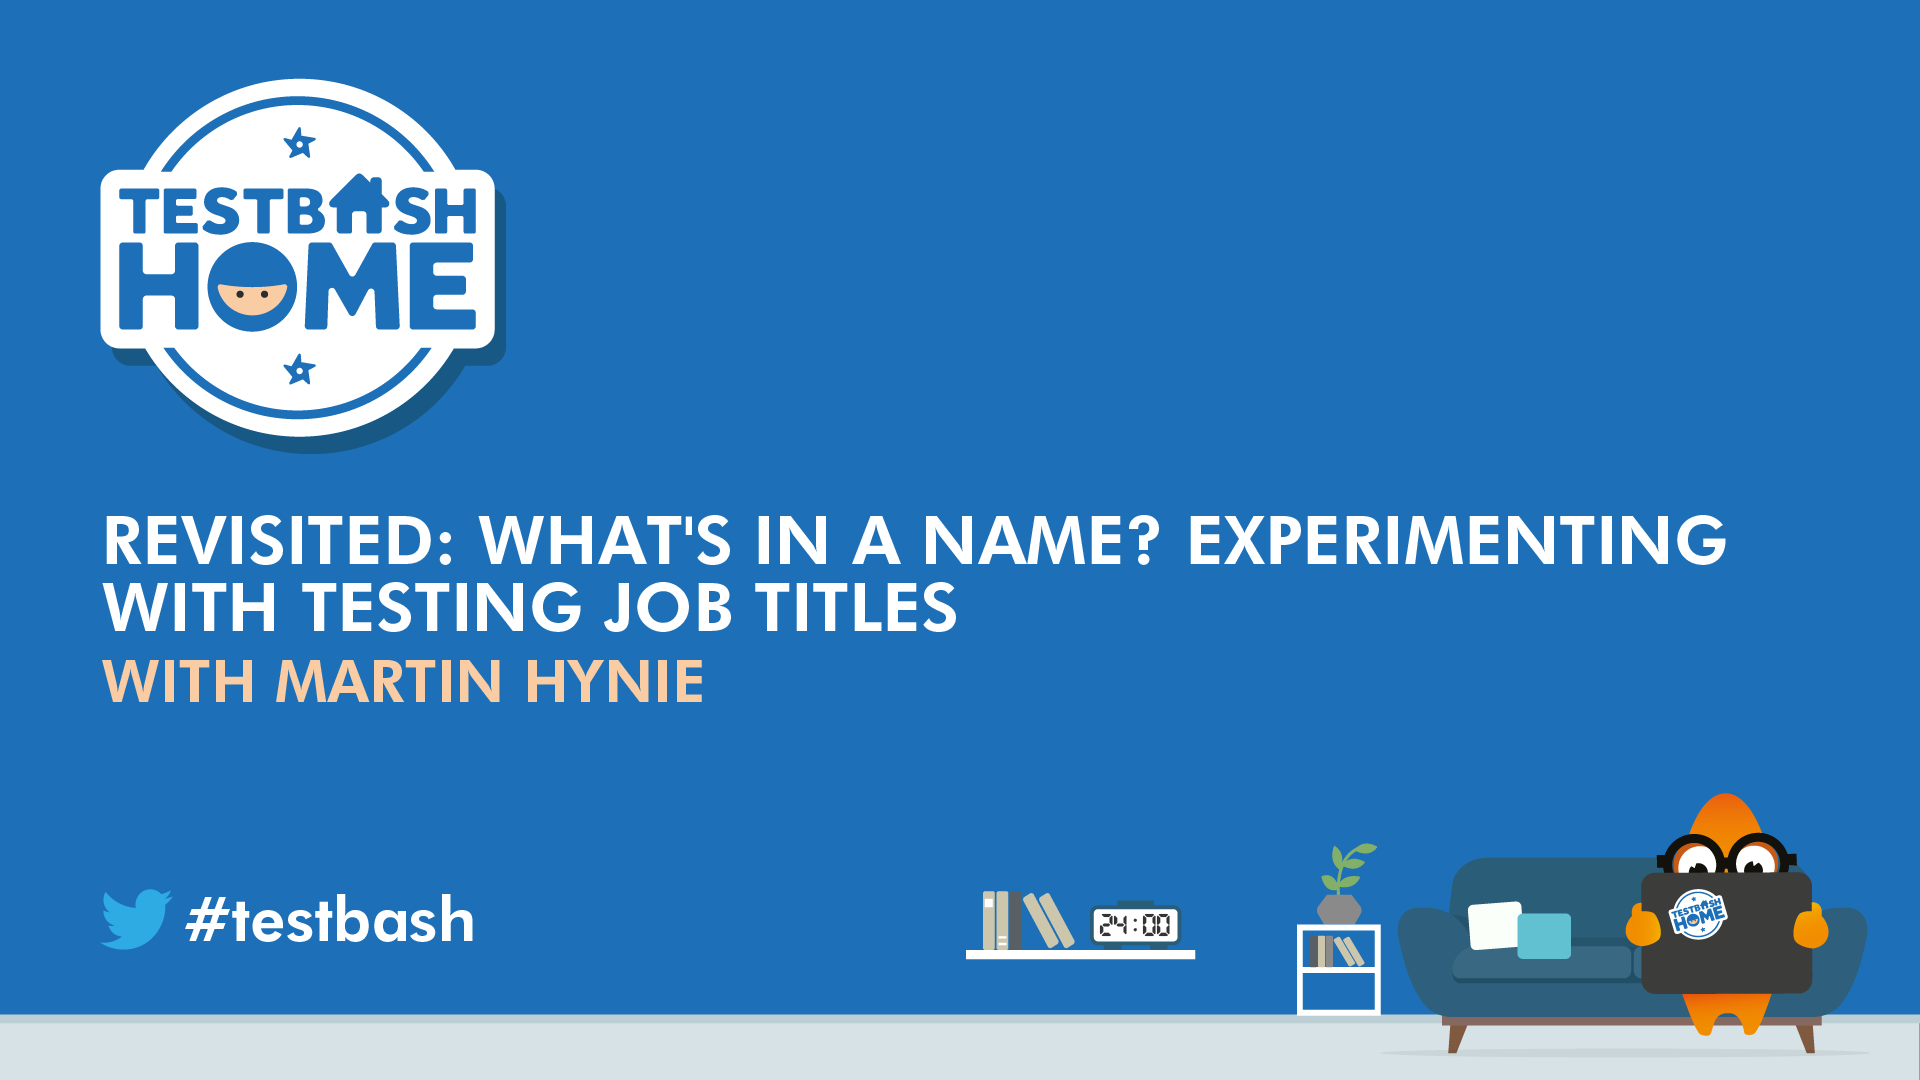 Revisited: What's In a Name? Experimenting With Testing Job Titles - Martin Hynie